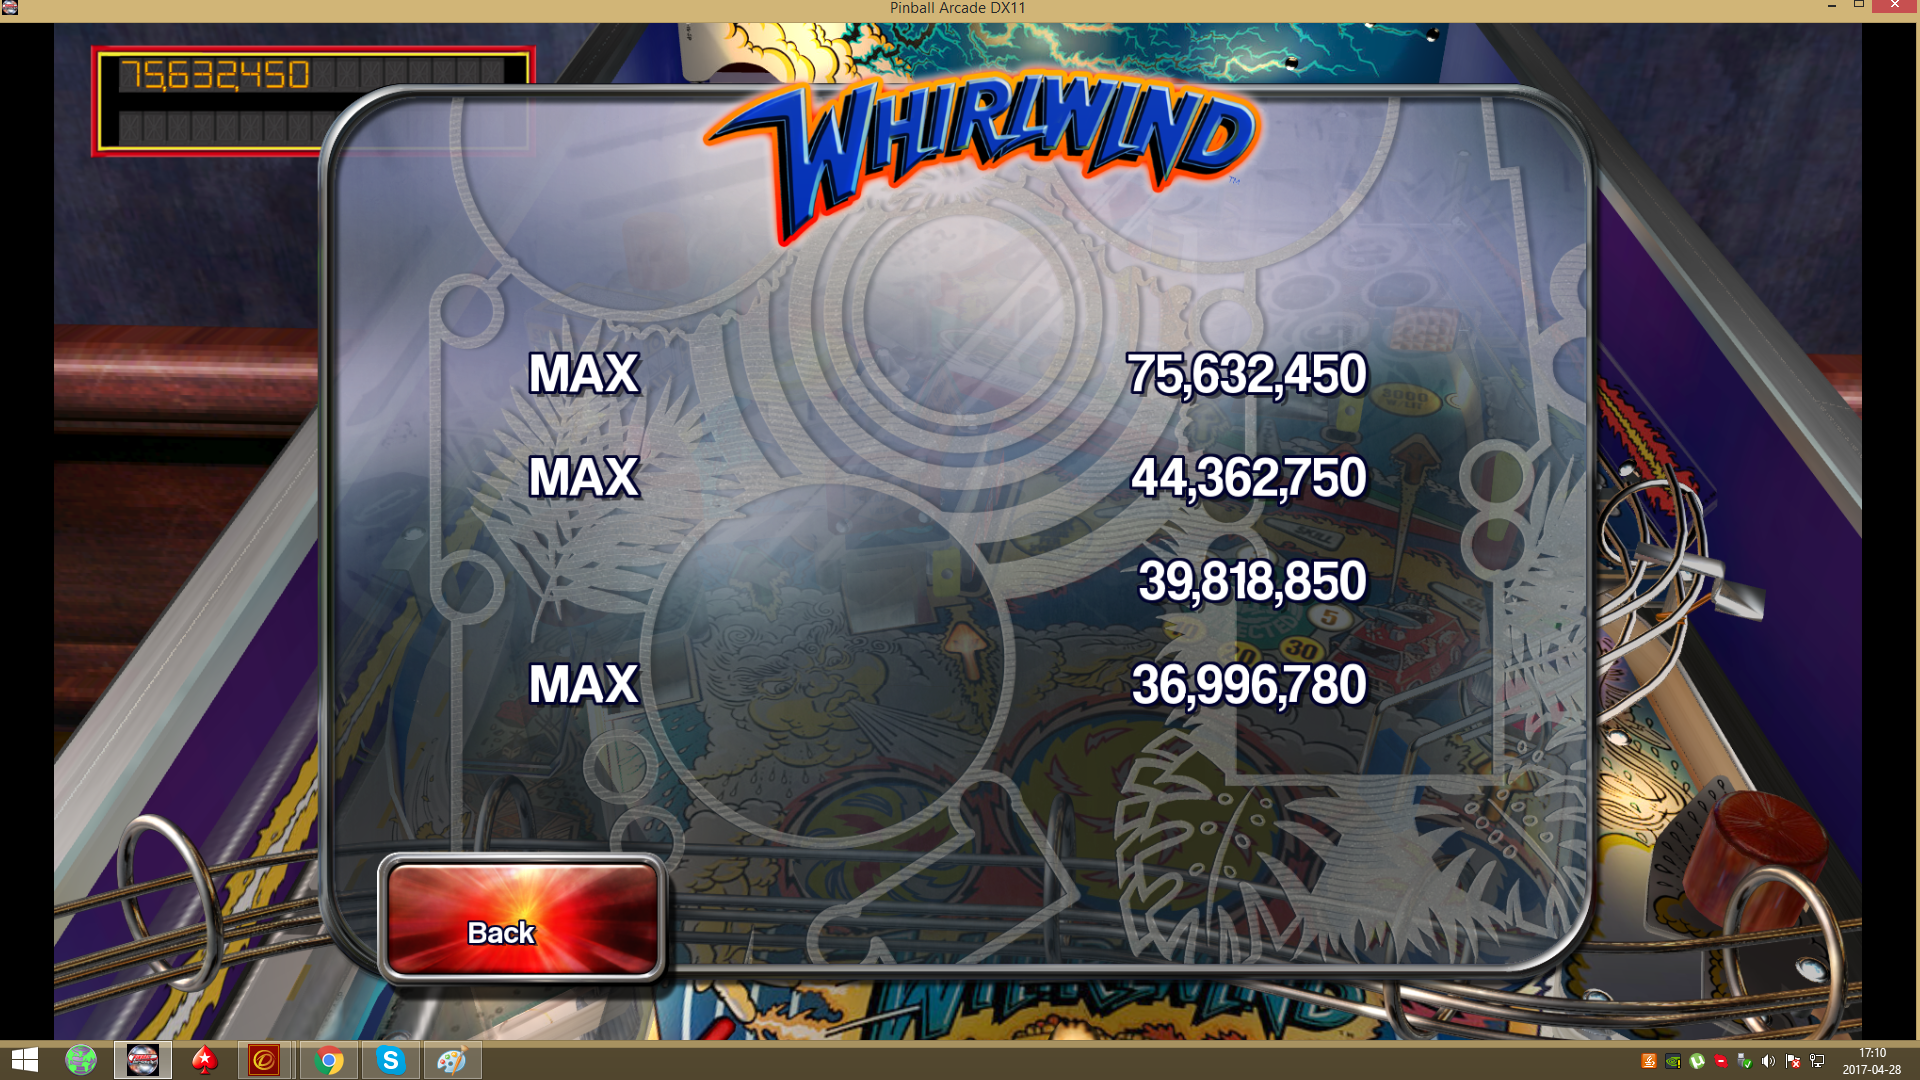 Pinball Arcade: Whirlwind 75,623,450 points